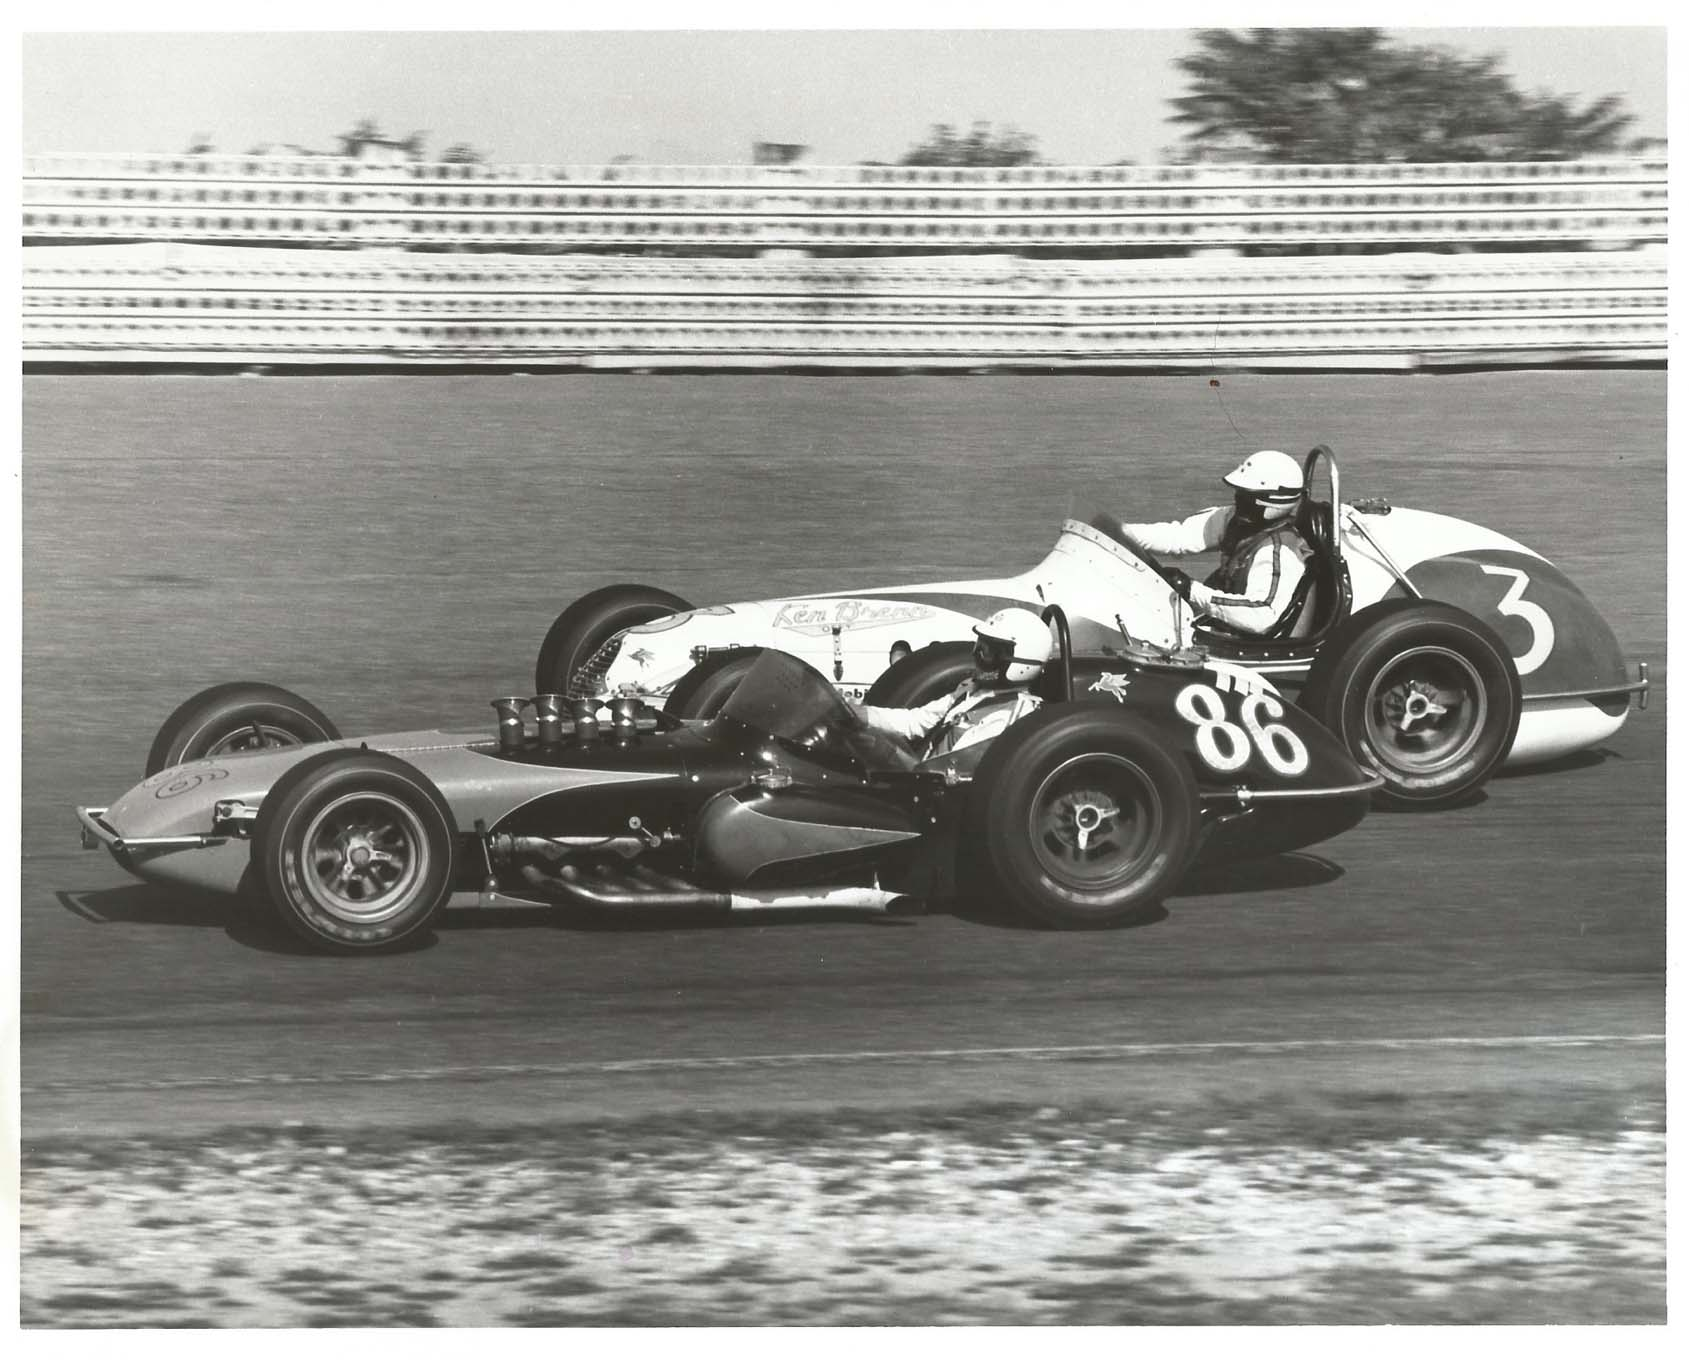 """That's Skip driving in the Trenton 200 in 1965, in as nasty-slippery a laydown roadster as you'll ever see. The Offy was almost on its side, in contrast with Wally Dallenbach next to Skip. """"I acquired it in 1962 and drove it in 1963 through '65,"""" says Skip. He finished 21st that race. Not impressed? While A.J. Foyt won the 200, Skip finished ahead of the likes of Rodger Ward, Jim Hurtubise, and Lloyd Ruby. He funded himself."""